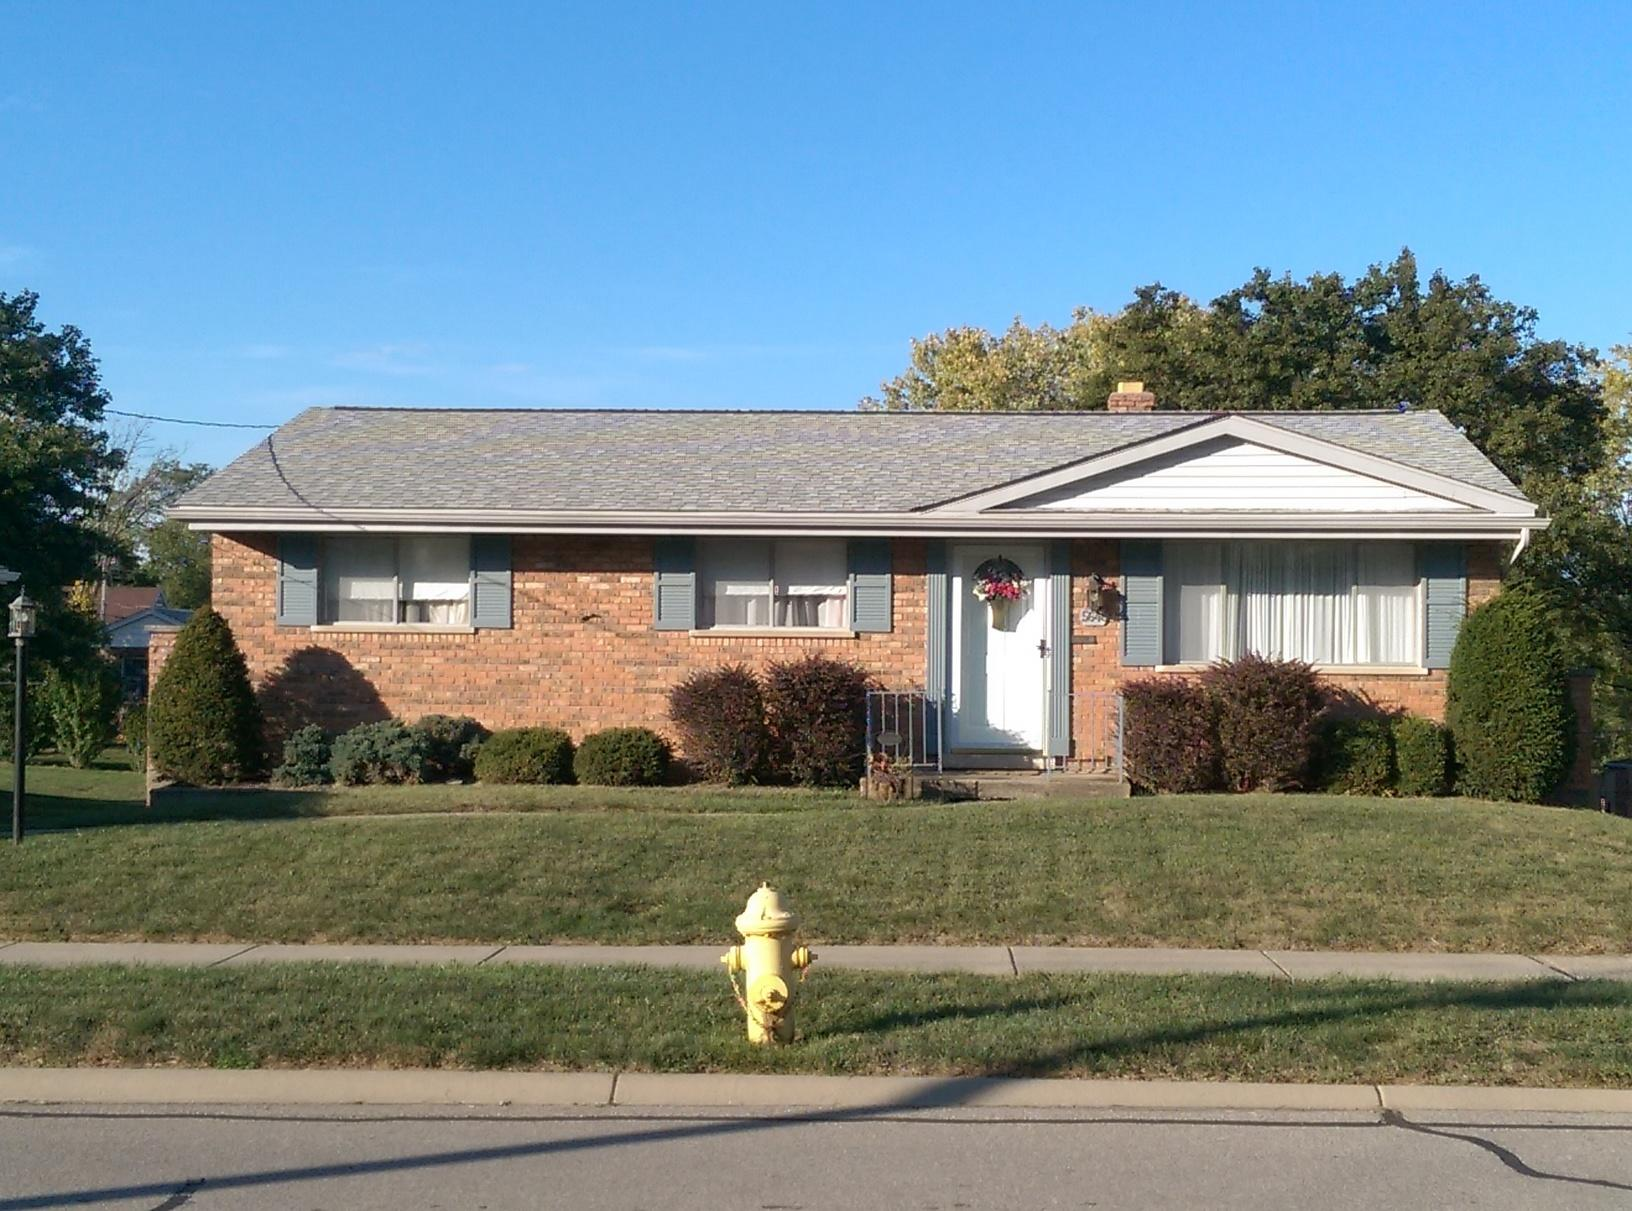 Roofing, Siding, gutters, & Fascia Installed in Cincinnati - After Photo